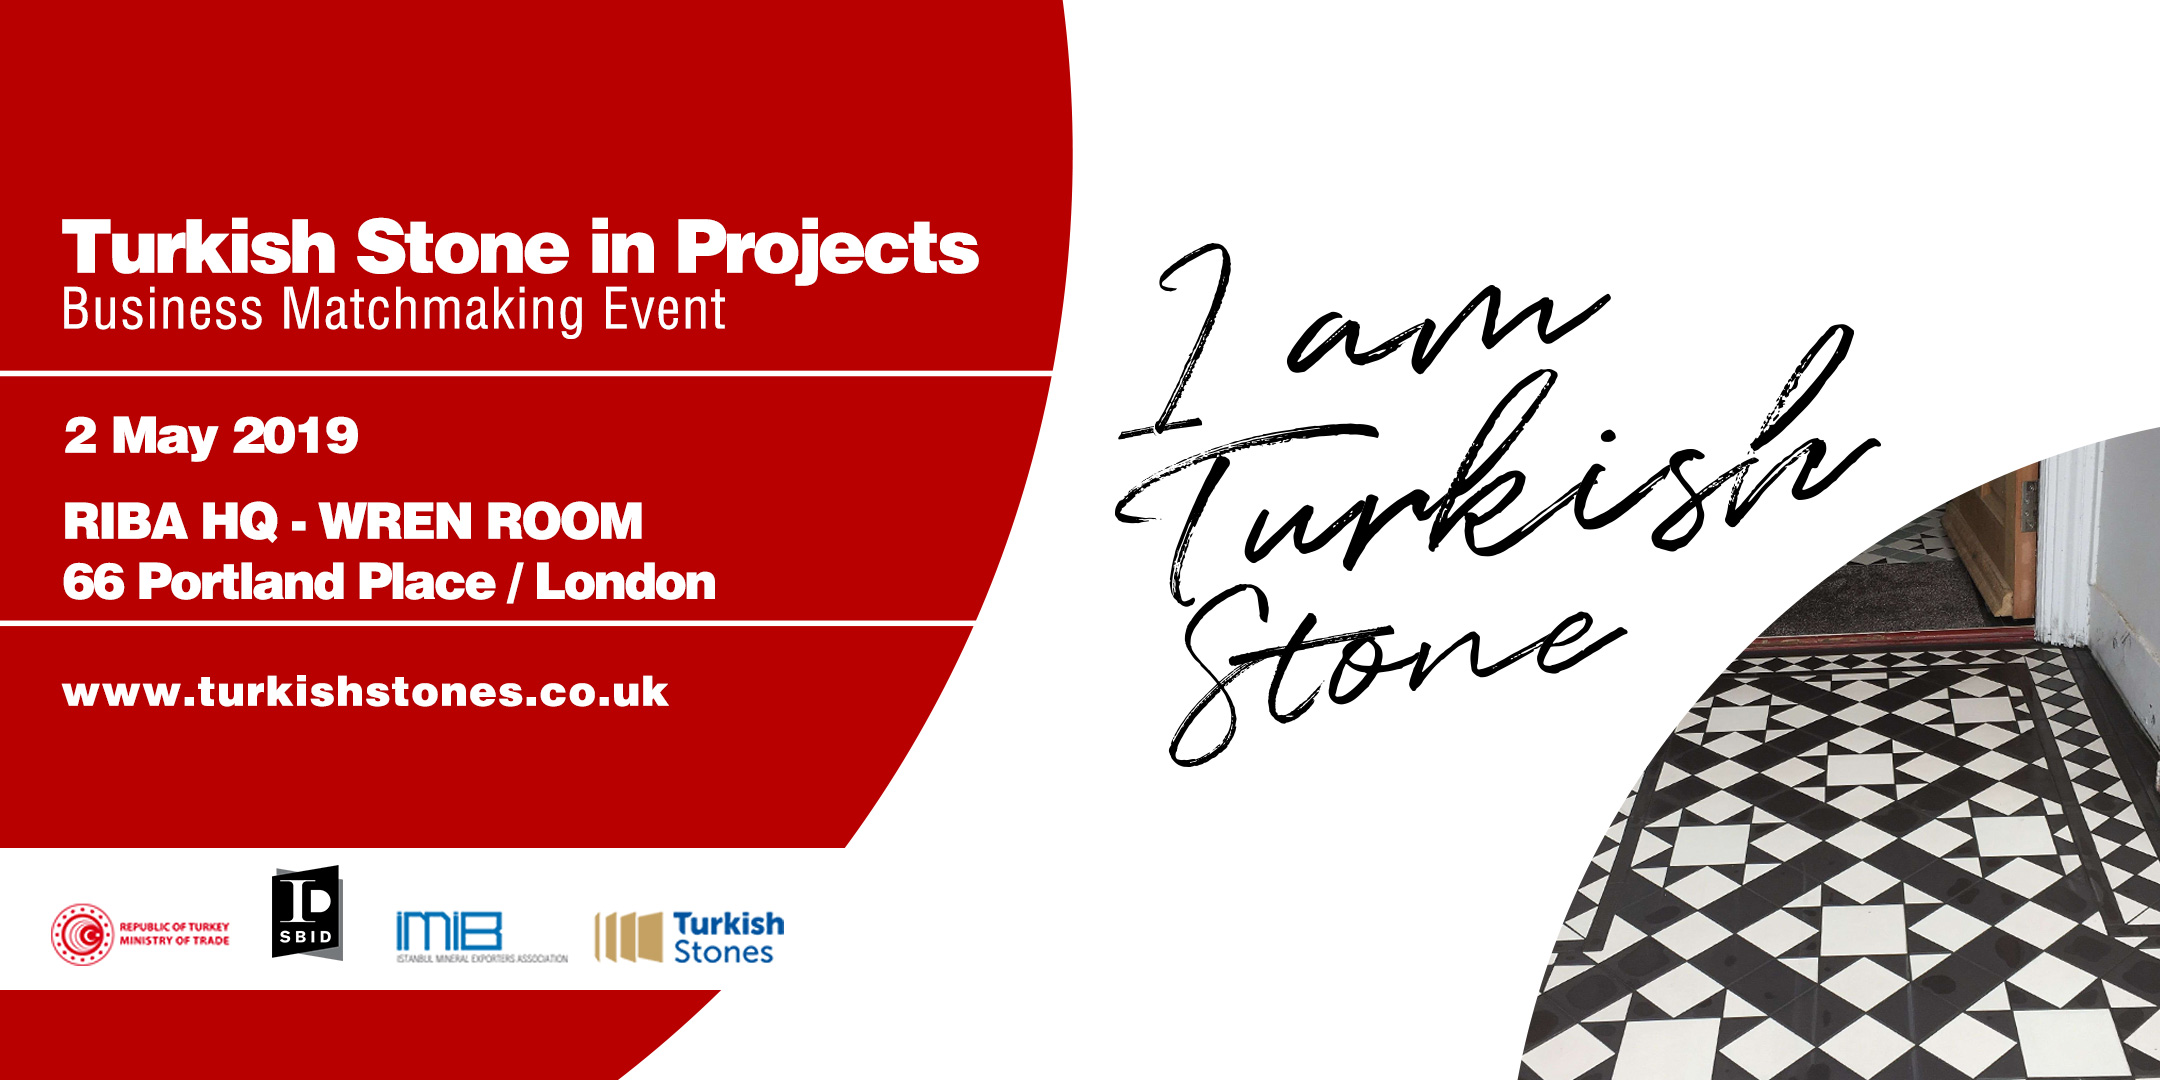 Design event for 2019 Turkish Stone in Projects